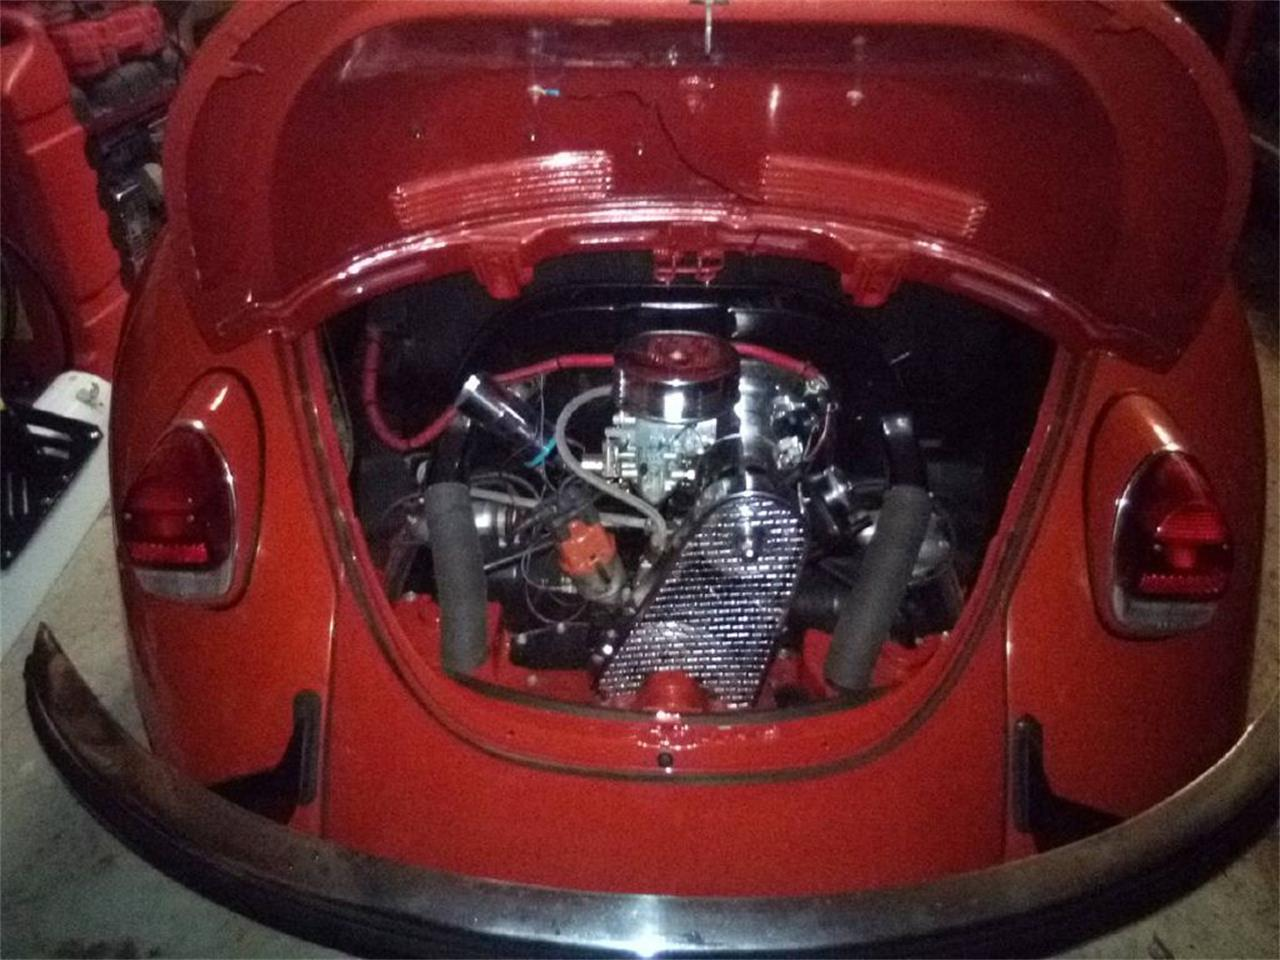 1968 Volkswagen Beetle for sale in West Pittston, PA – photo 2